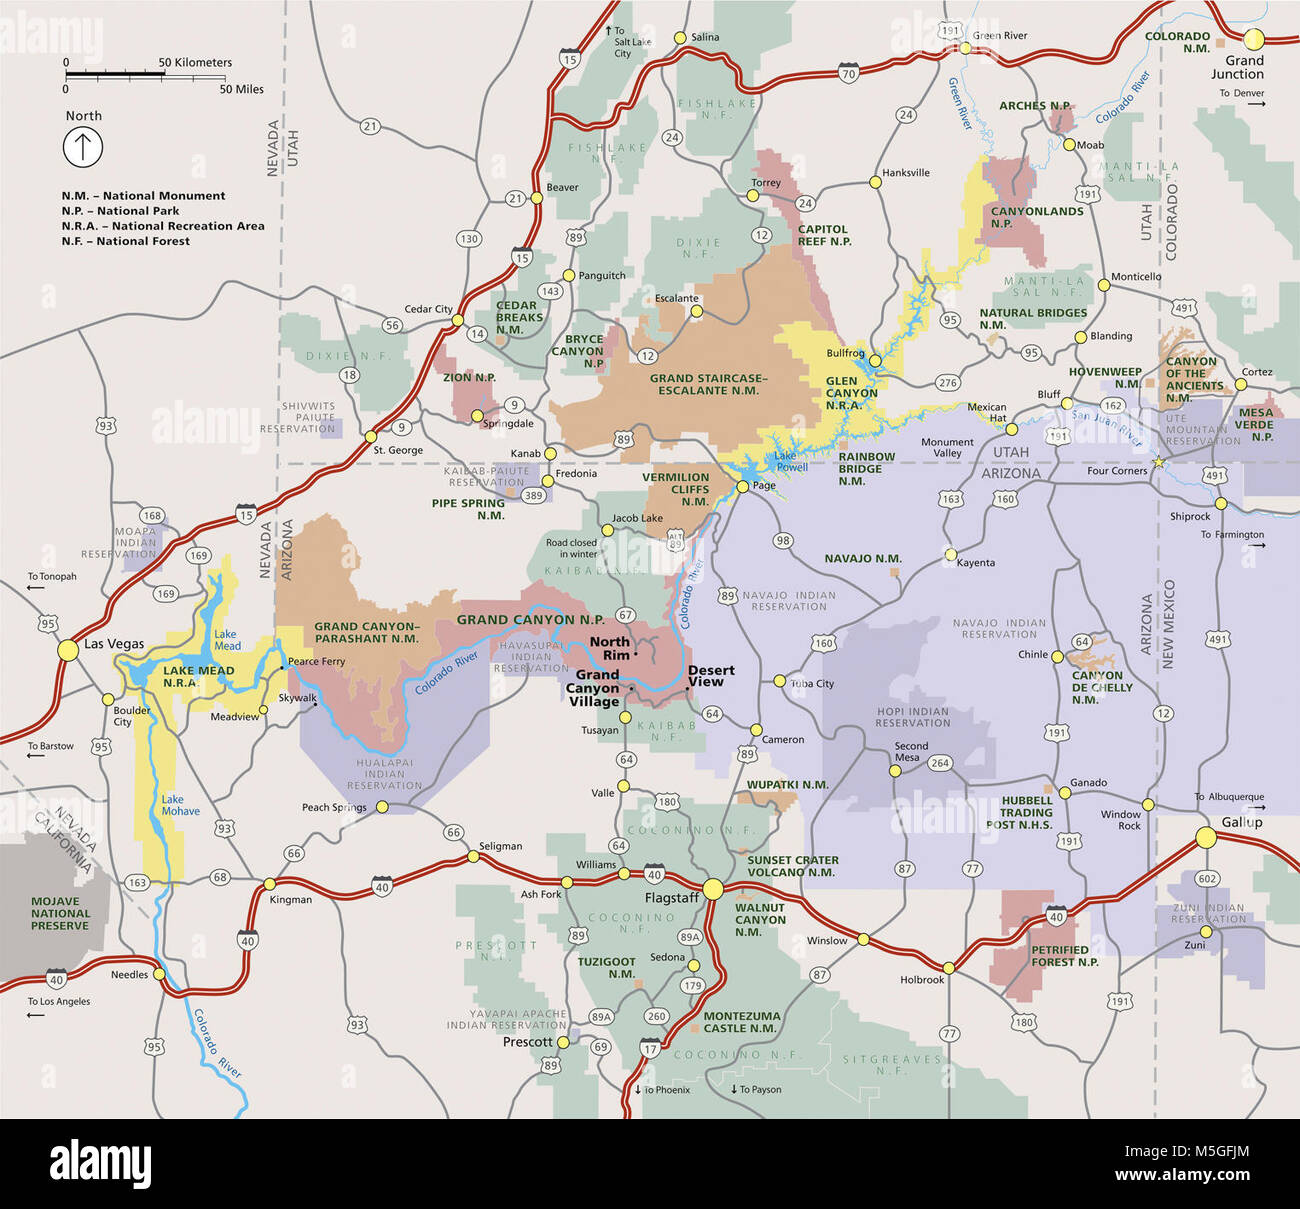 Grand Canyon National Park Regional Map Revision This Map